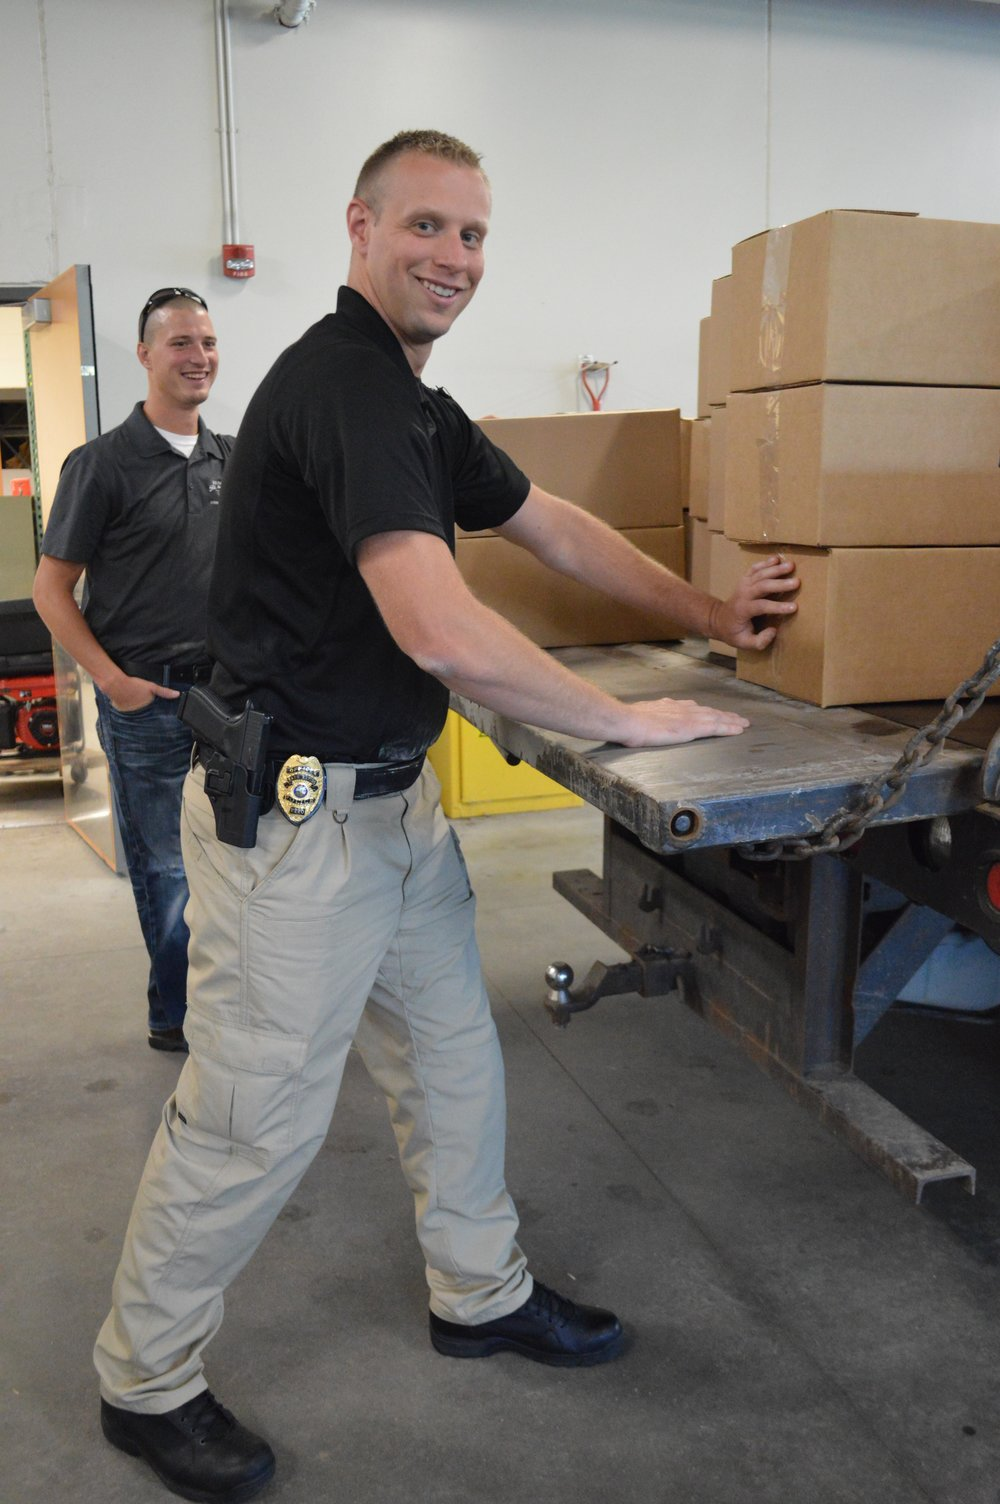 Sauk Rapids Police Officer Nicholas Bogart and Benton Soil and Water Conservation District Watershed Technician Travis Janson loading up the truck with the pharmaceutical waste for transportation to the Pope/Douglas Solid Waste Management facility in Alexandria.    Photo Credit to Benton County News